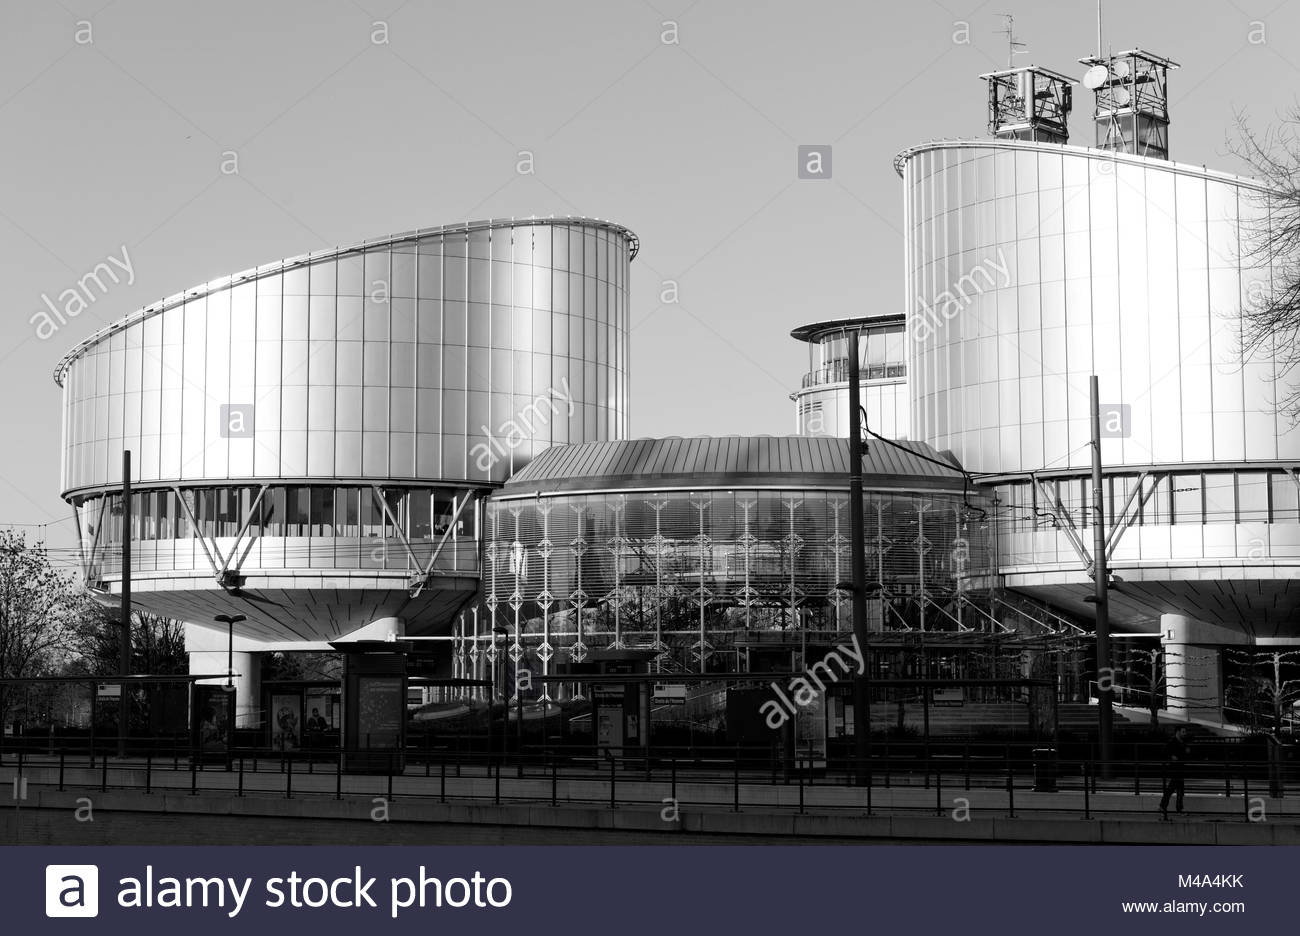 European Court of Human Rights Justice Strasbourg - Stock Image